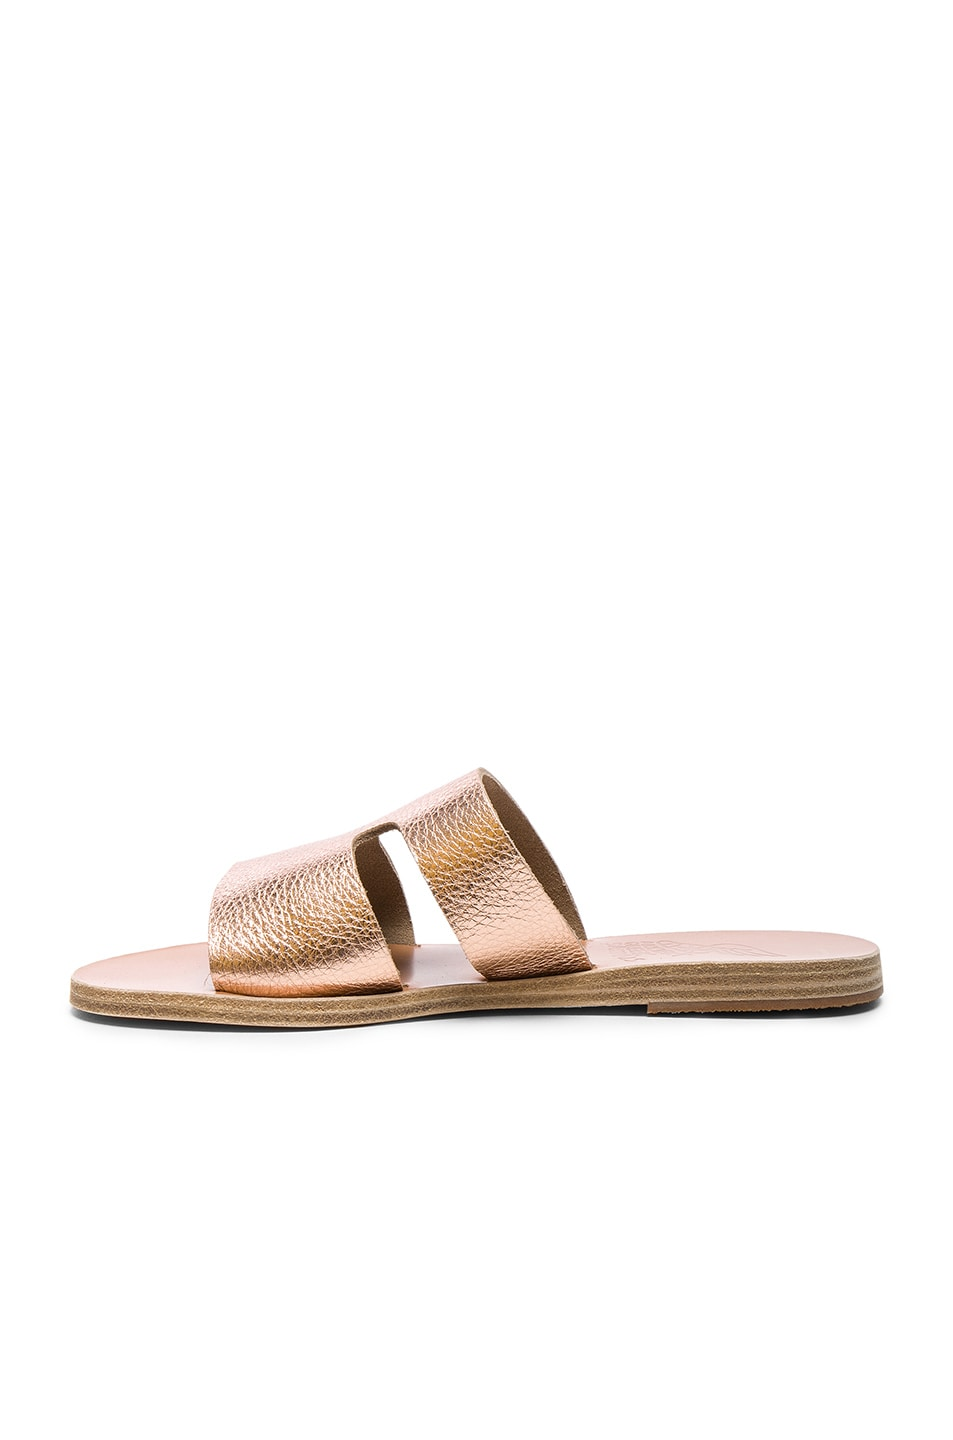 Image 5 of Ancient Greek Sandals Metallic Leather Apteros Sandals in Pink Metallic